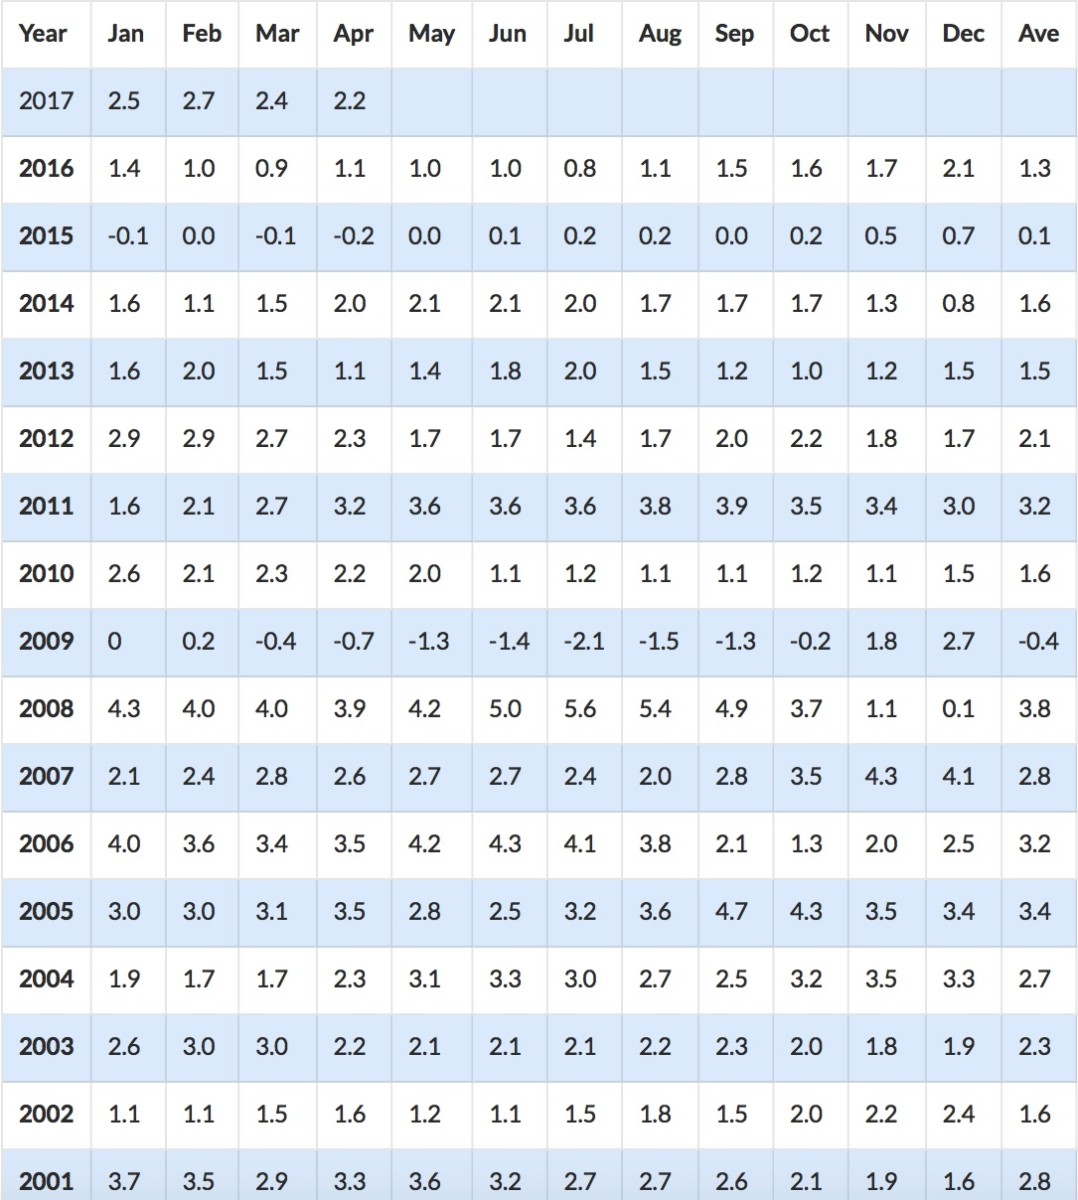 Since figures above are 12-month periods, you can see what the inflation rate was for each month.  Look to the December column to find inflation rates by calendar year.  The very last column shows the average inflation rate for each year.